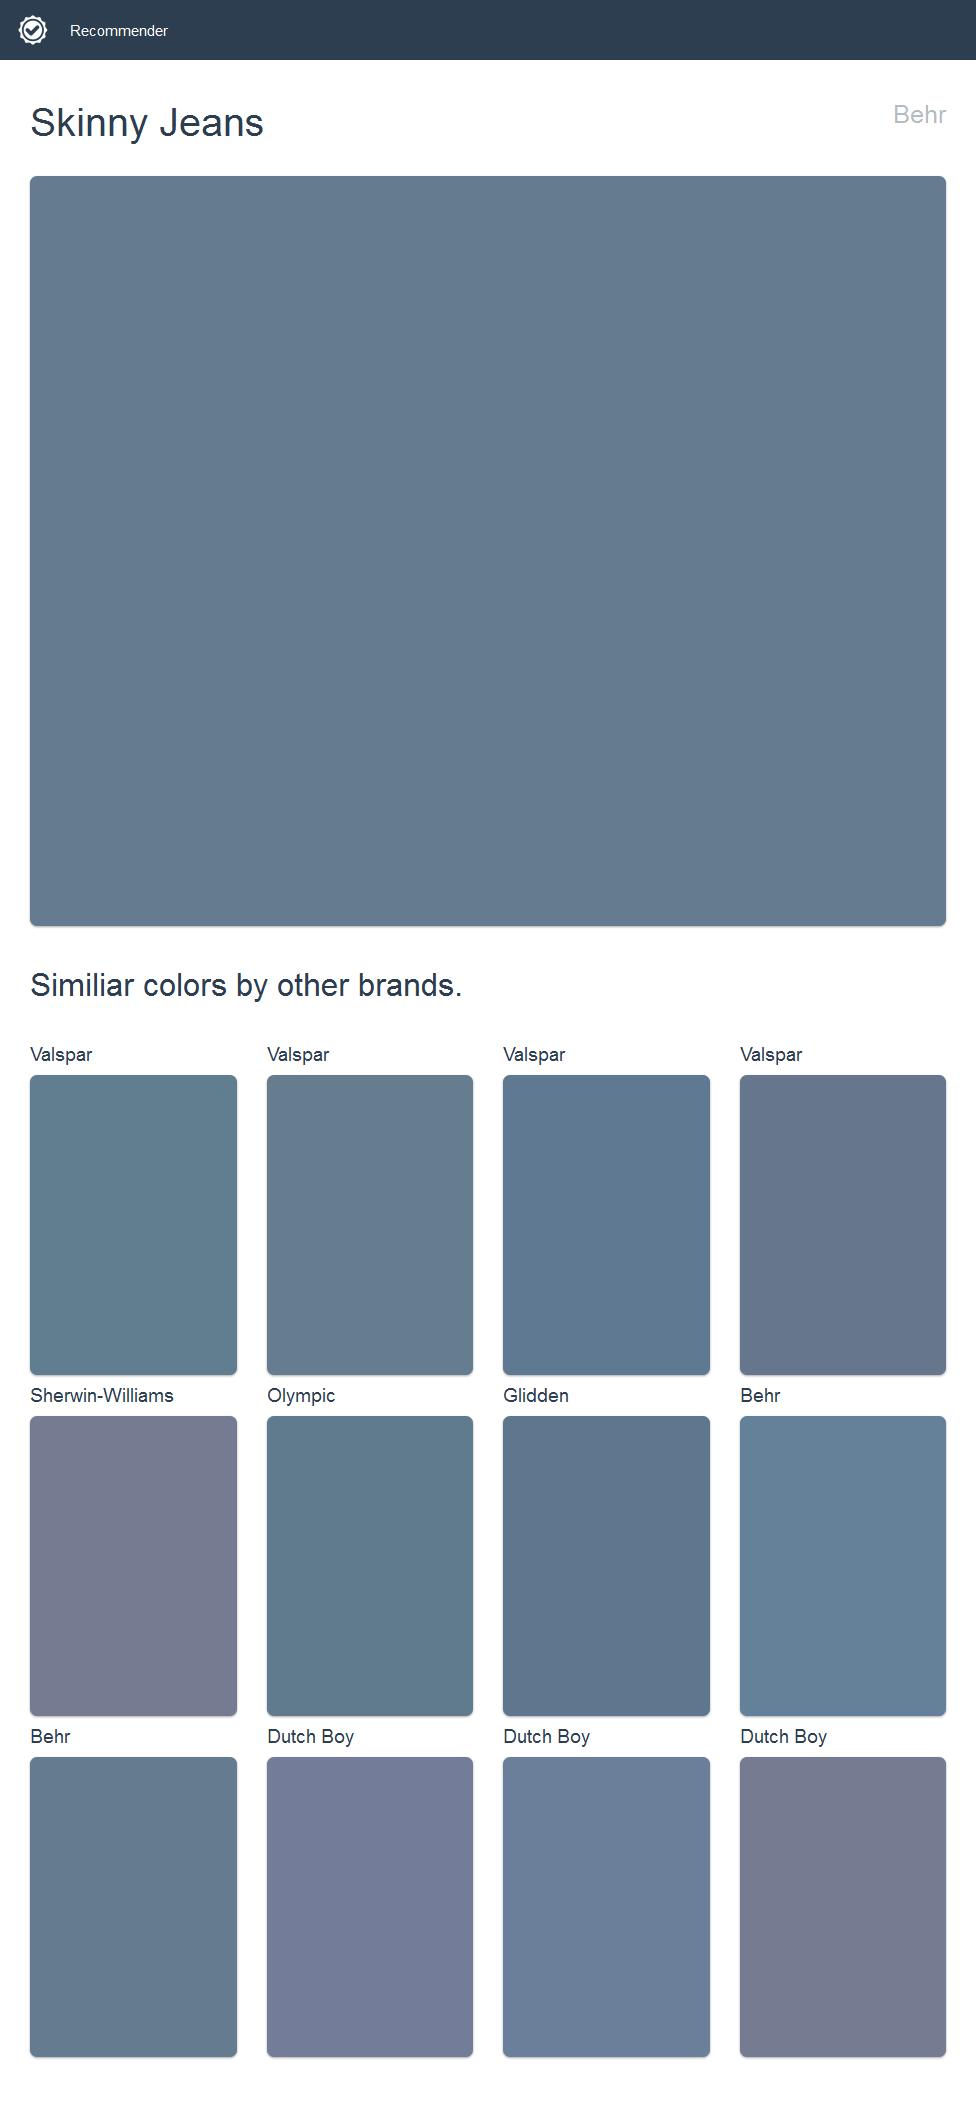 Skinny Jeans, Behr. Click the image to see similiar colors by other brands.